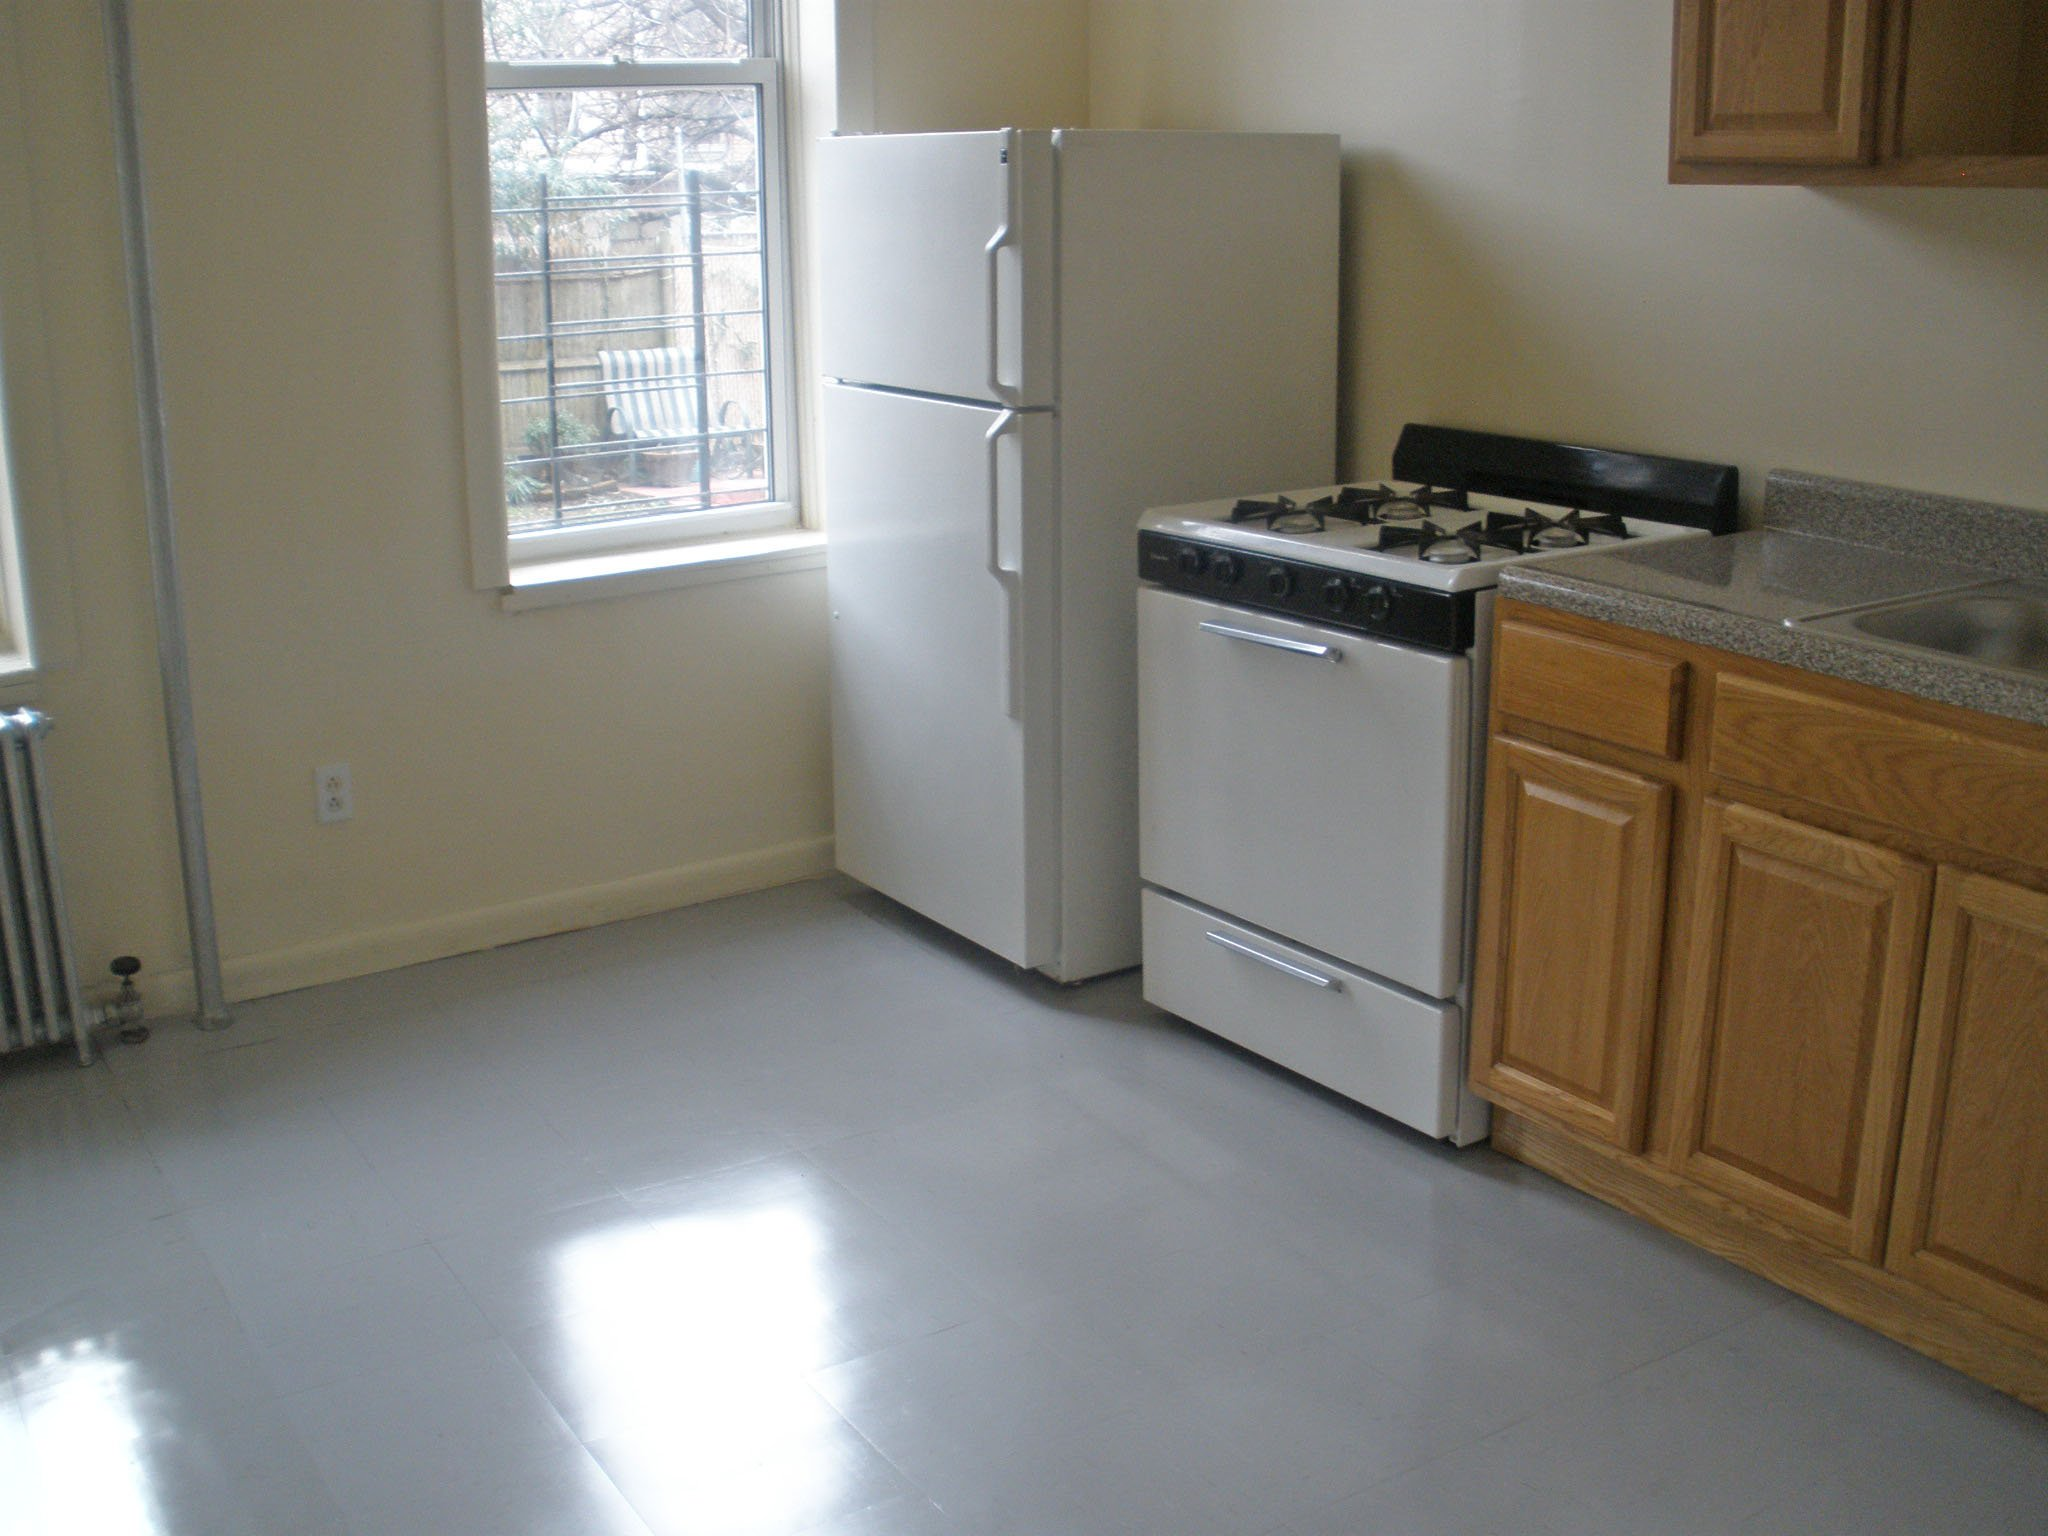 Bedford stuyvesant 2 bedroom apartment for rent brooklyn crg3109 for Two bedroom apartments in brooklyn ny